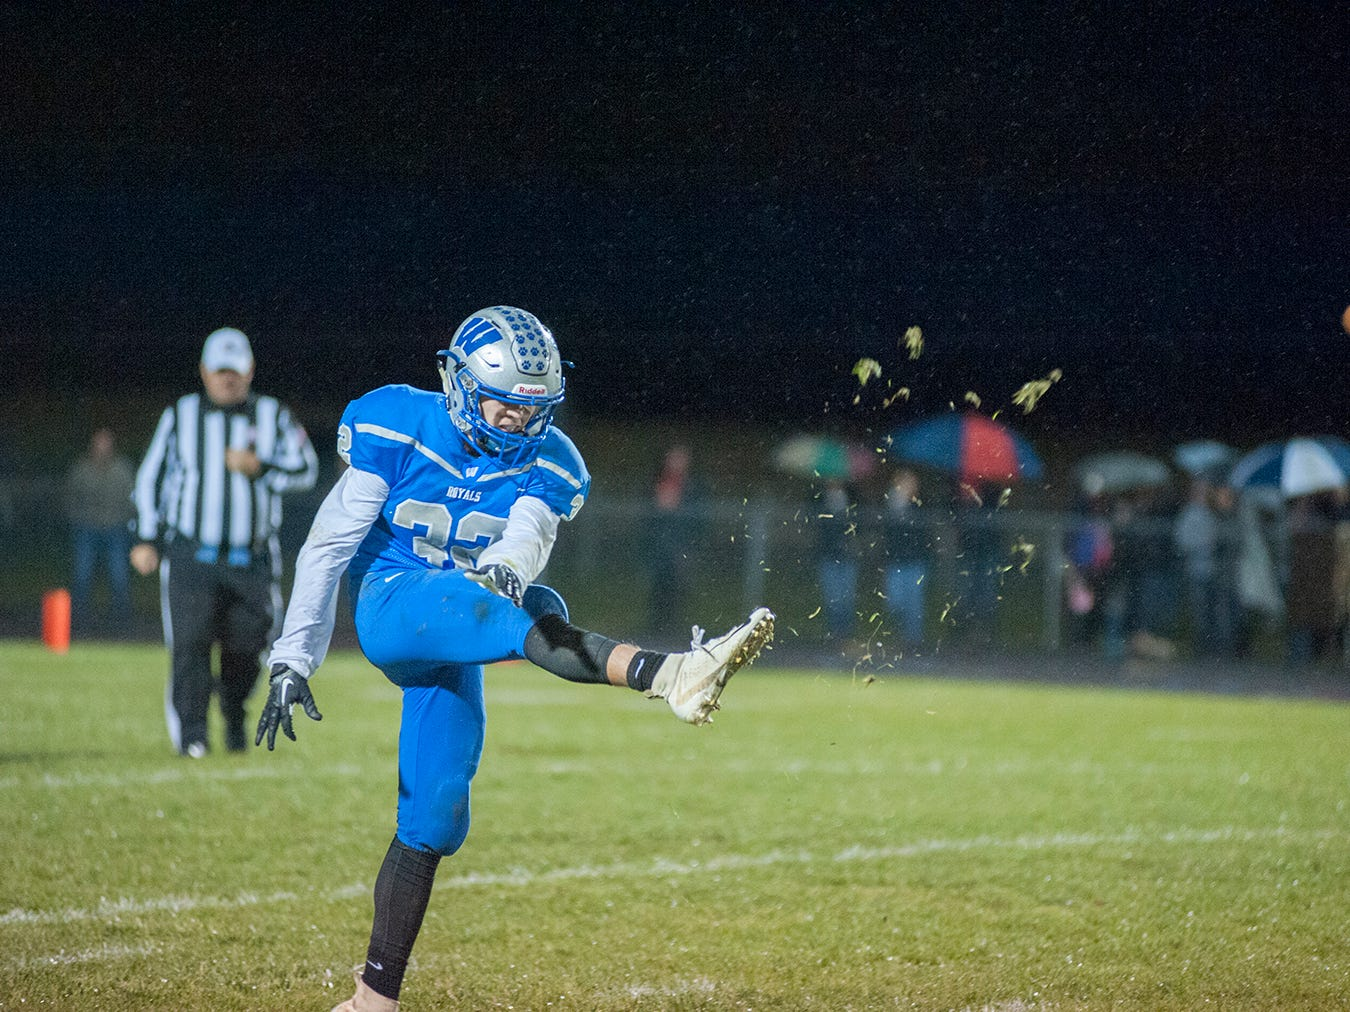 Wynford's Seth Benedict punts the ball.